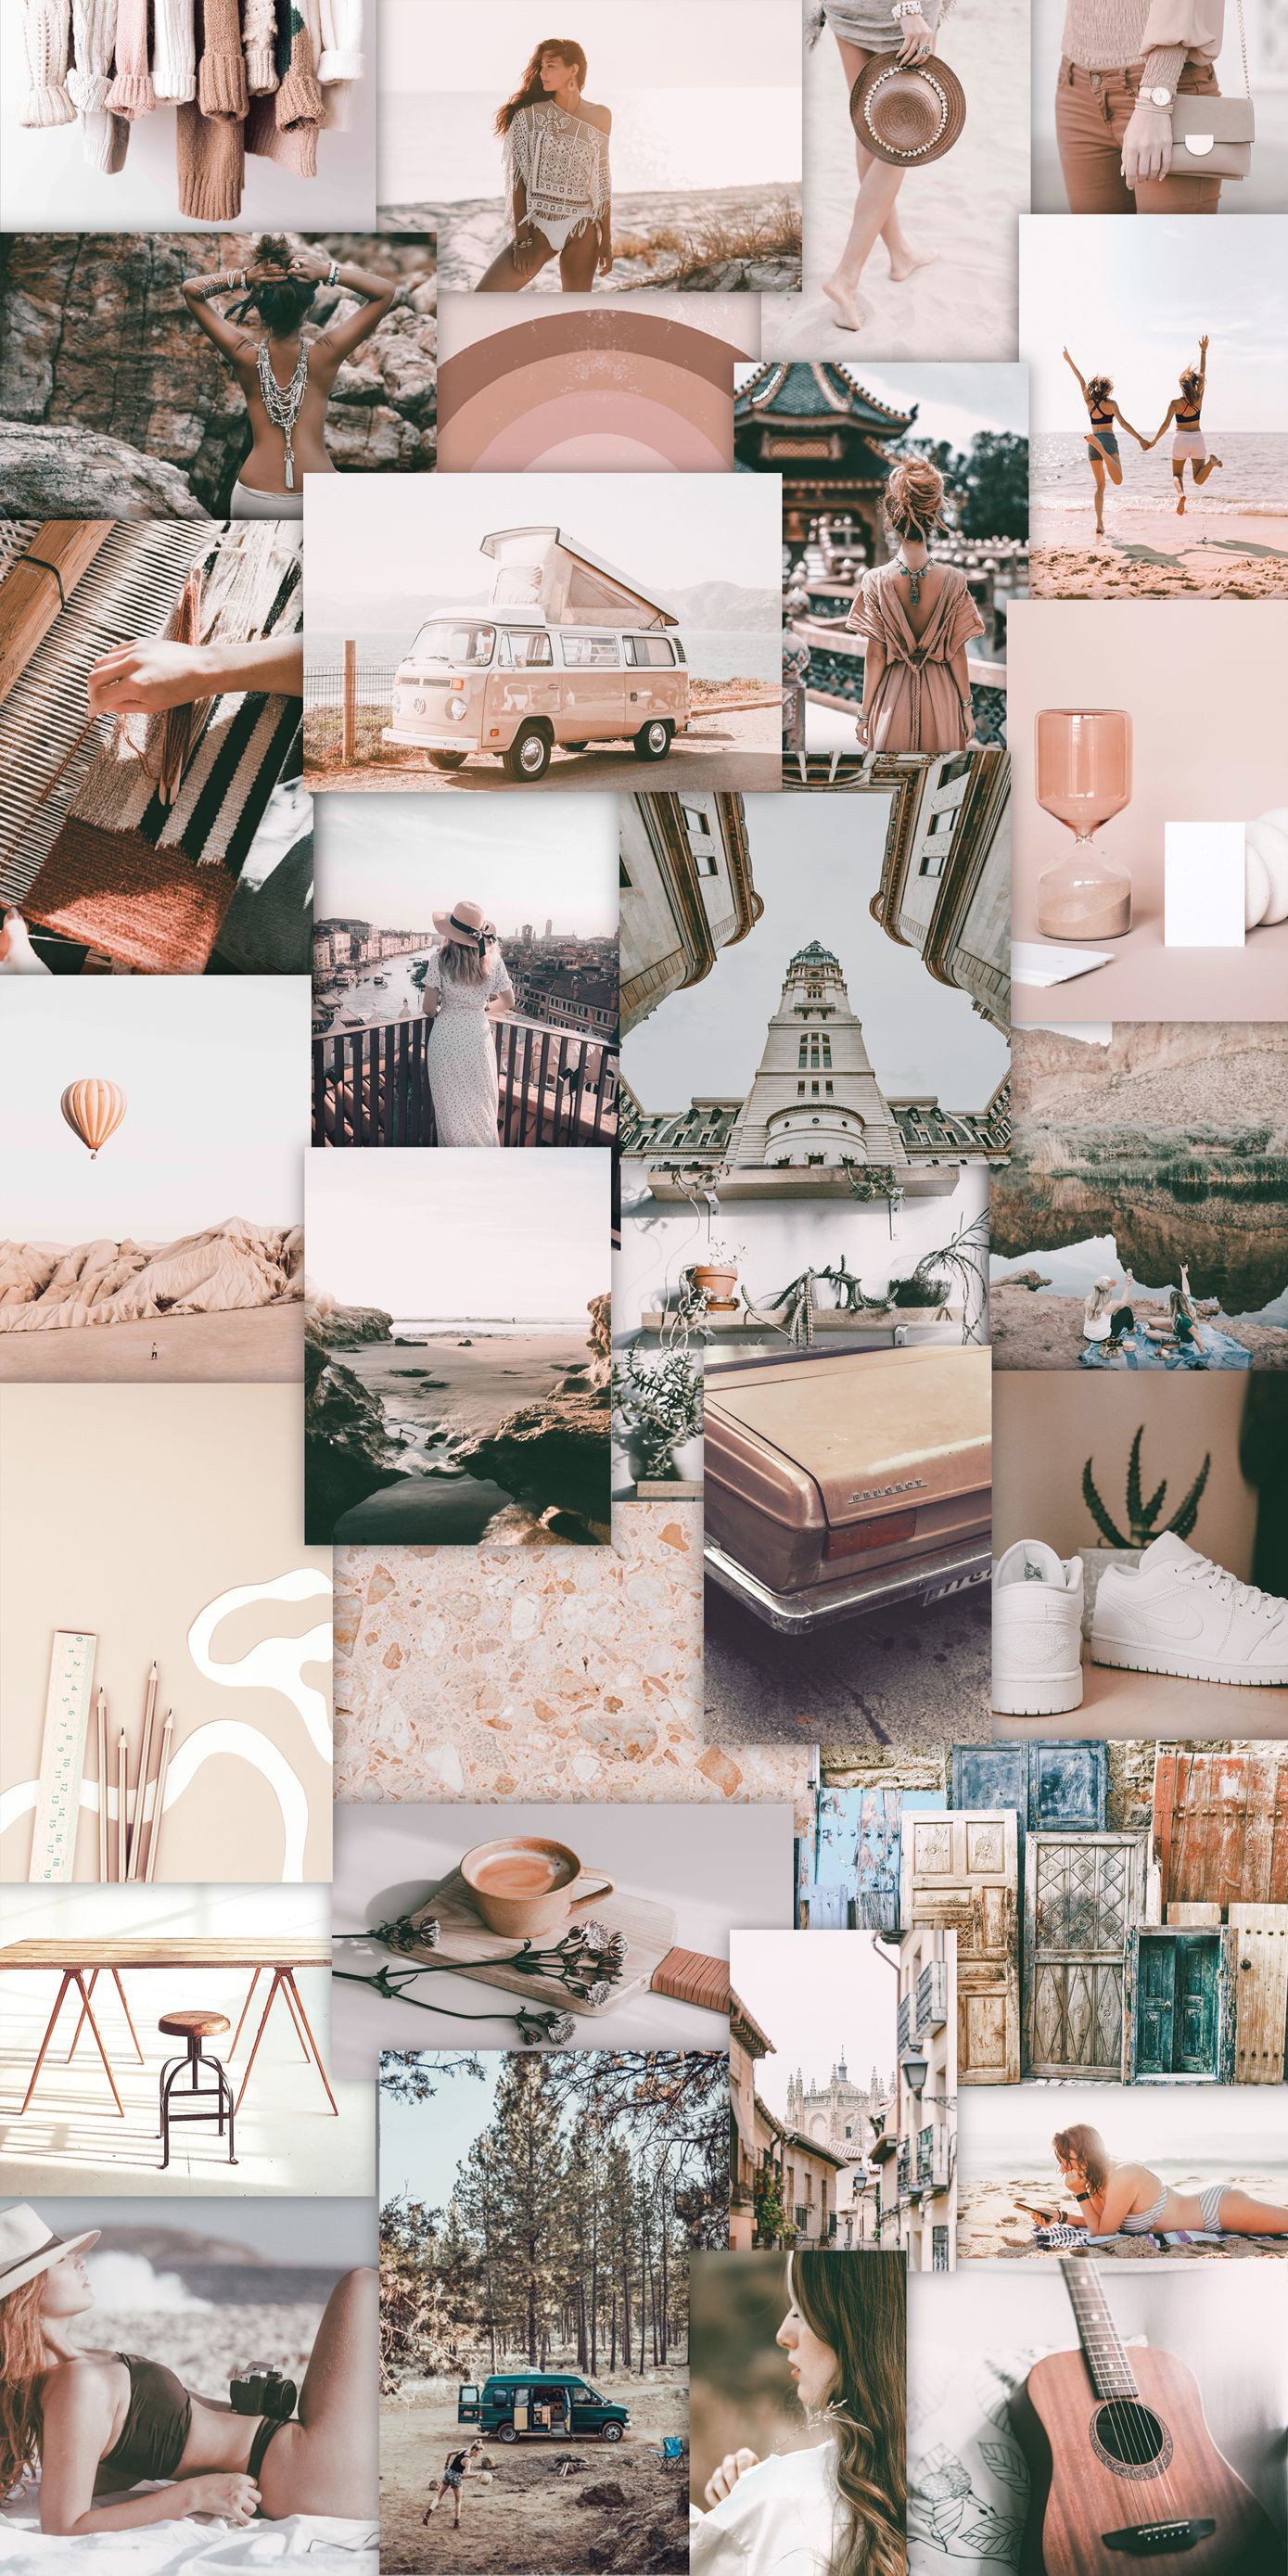 Boho Aesthetic Pictures Digital Wall Collage Kit Wall Decor Pictures Cute Home Screen Wallpaper Wall Collage